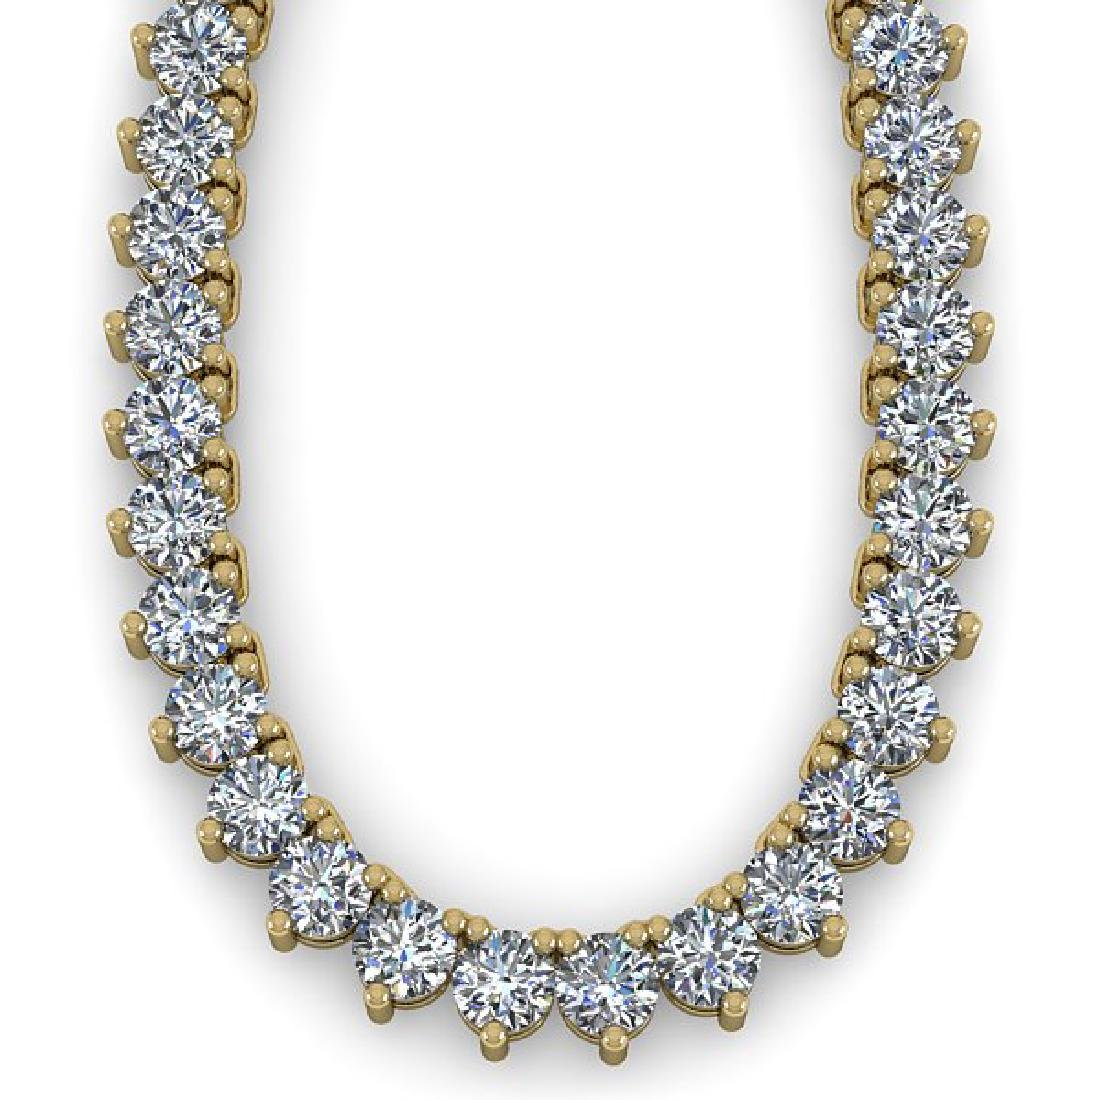 68 CTW Solitaire Certified SI Diamond Necklace 14K - 2